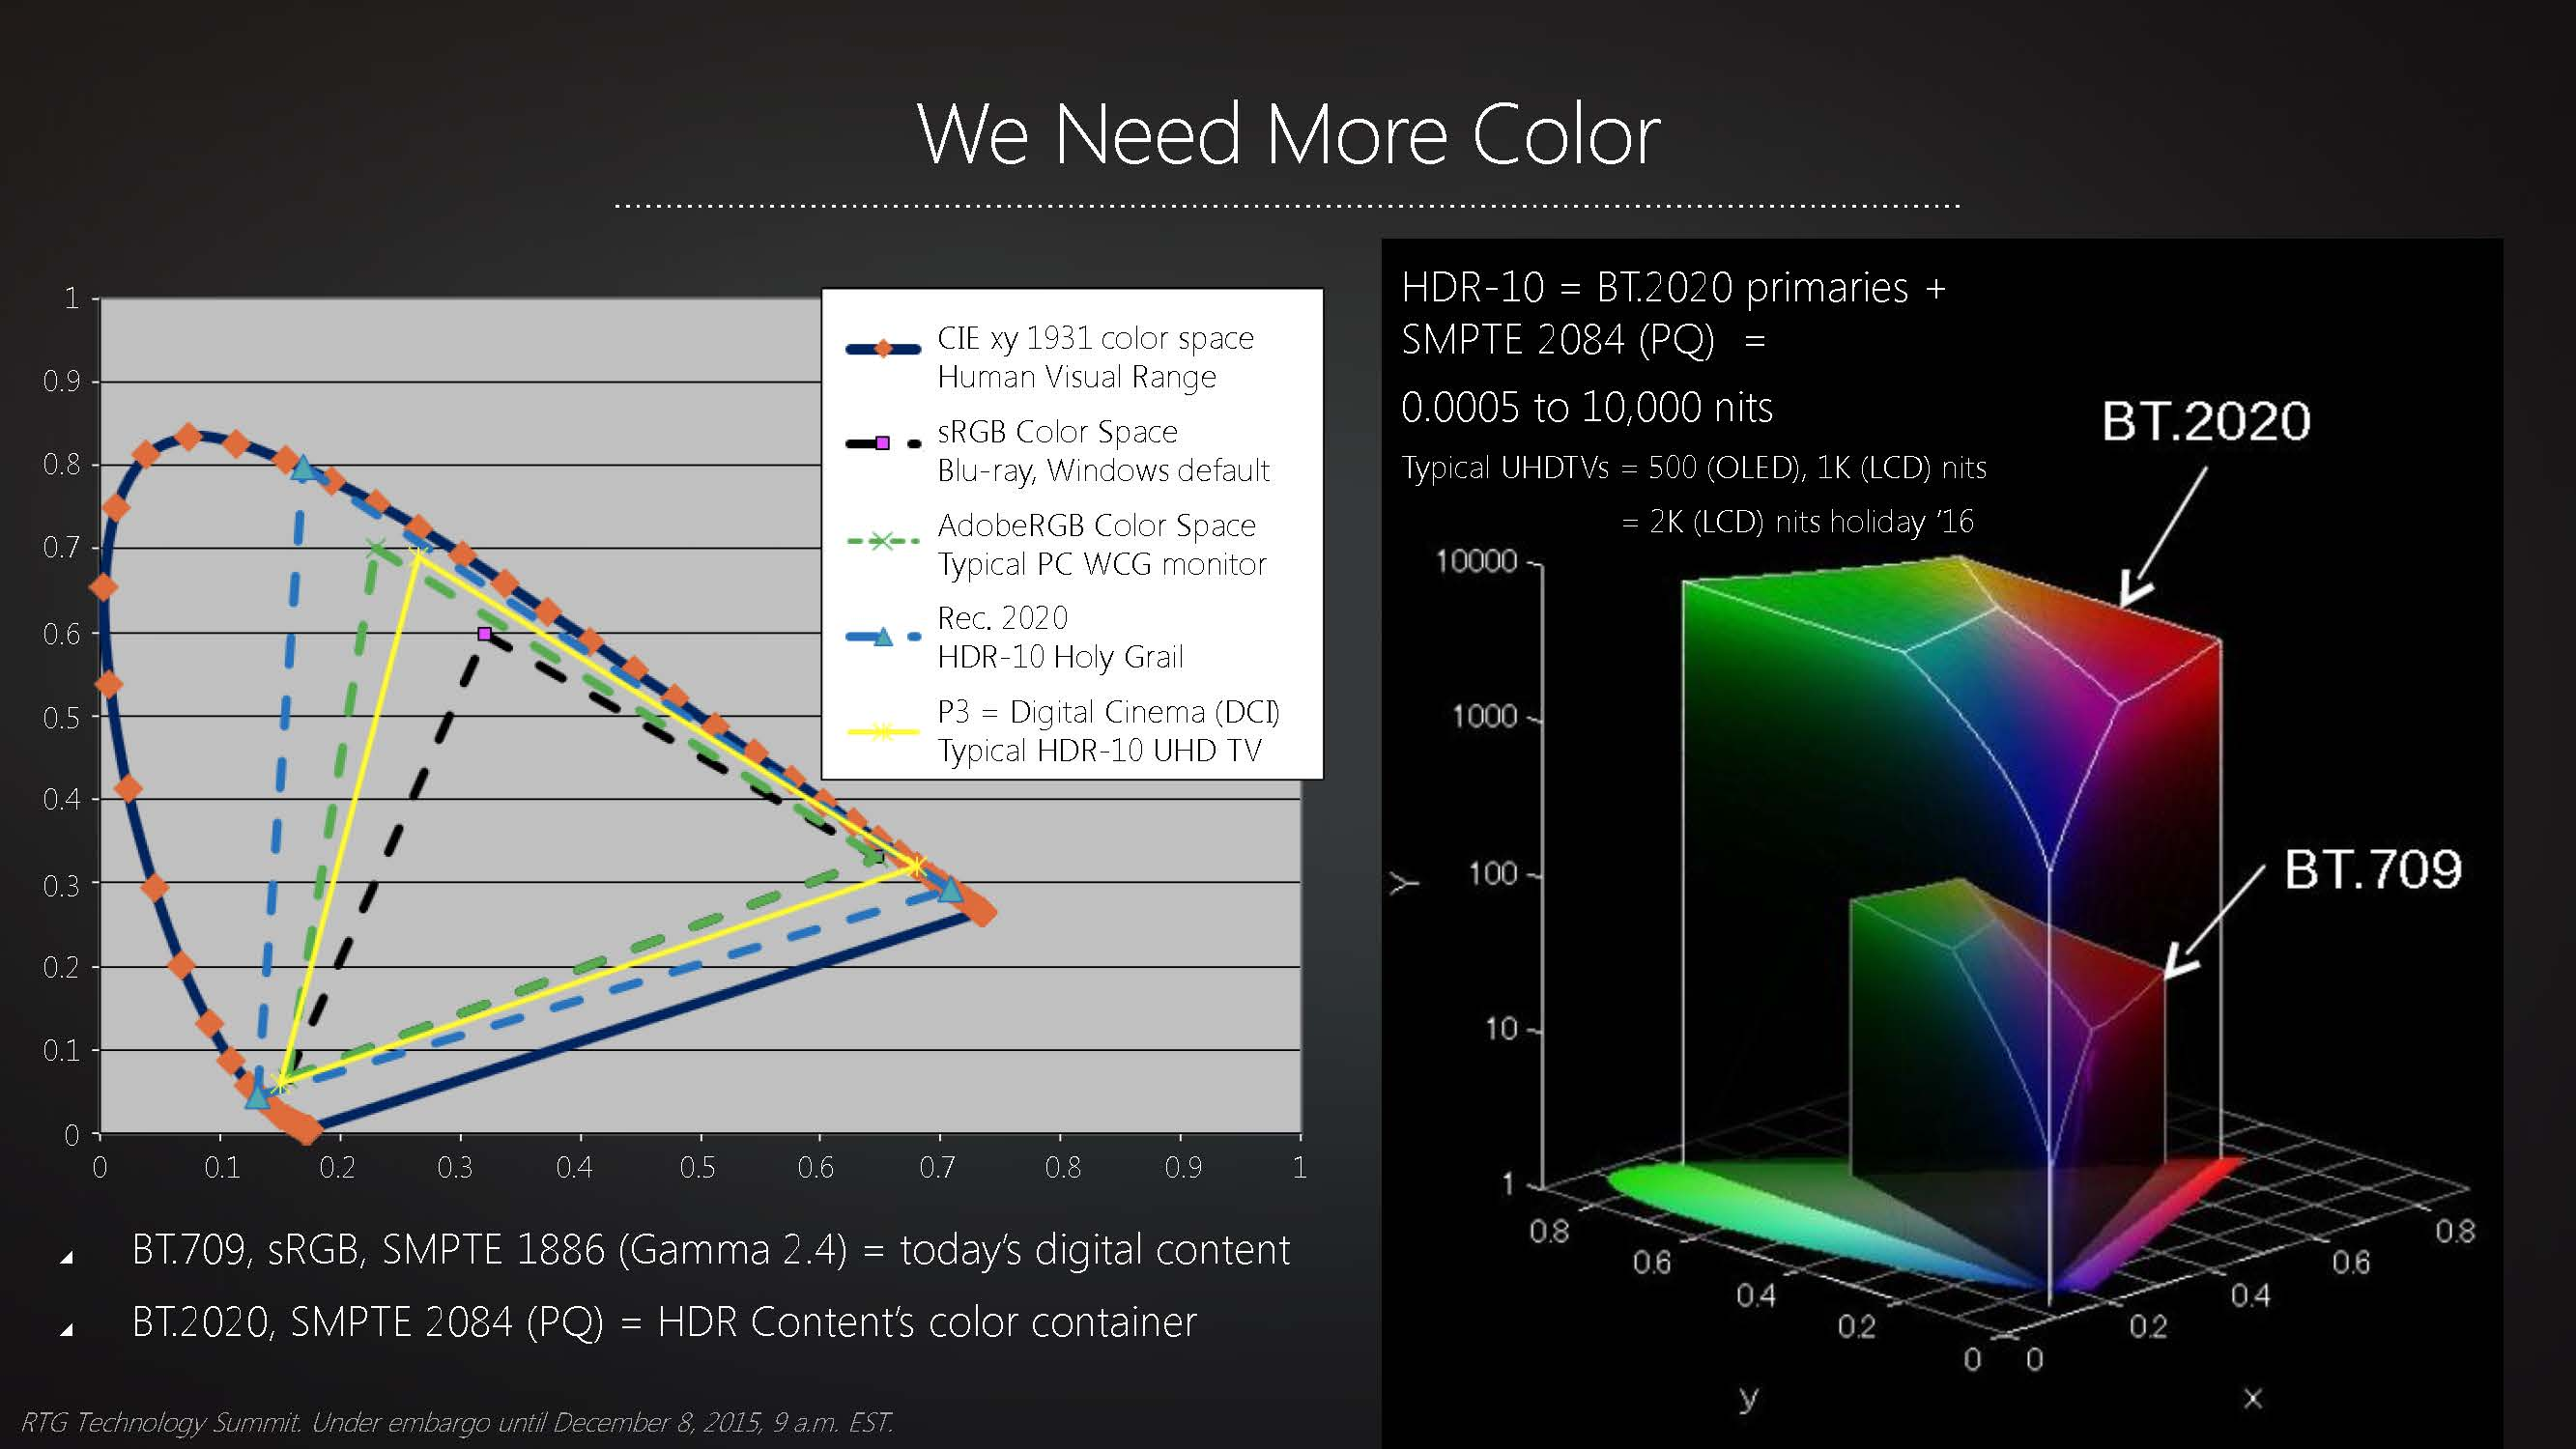 Amd Bringing Better Pixels To Pc Hdr And Larger Color Space To Consumers